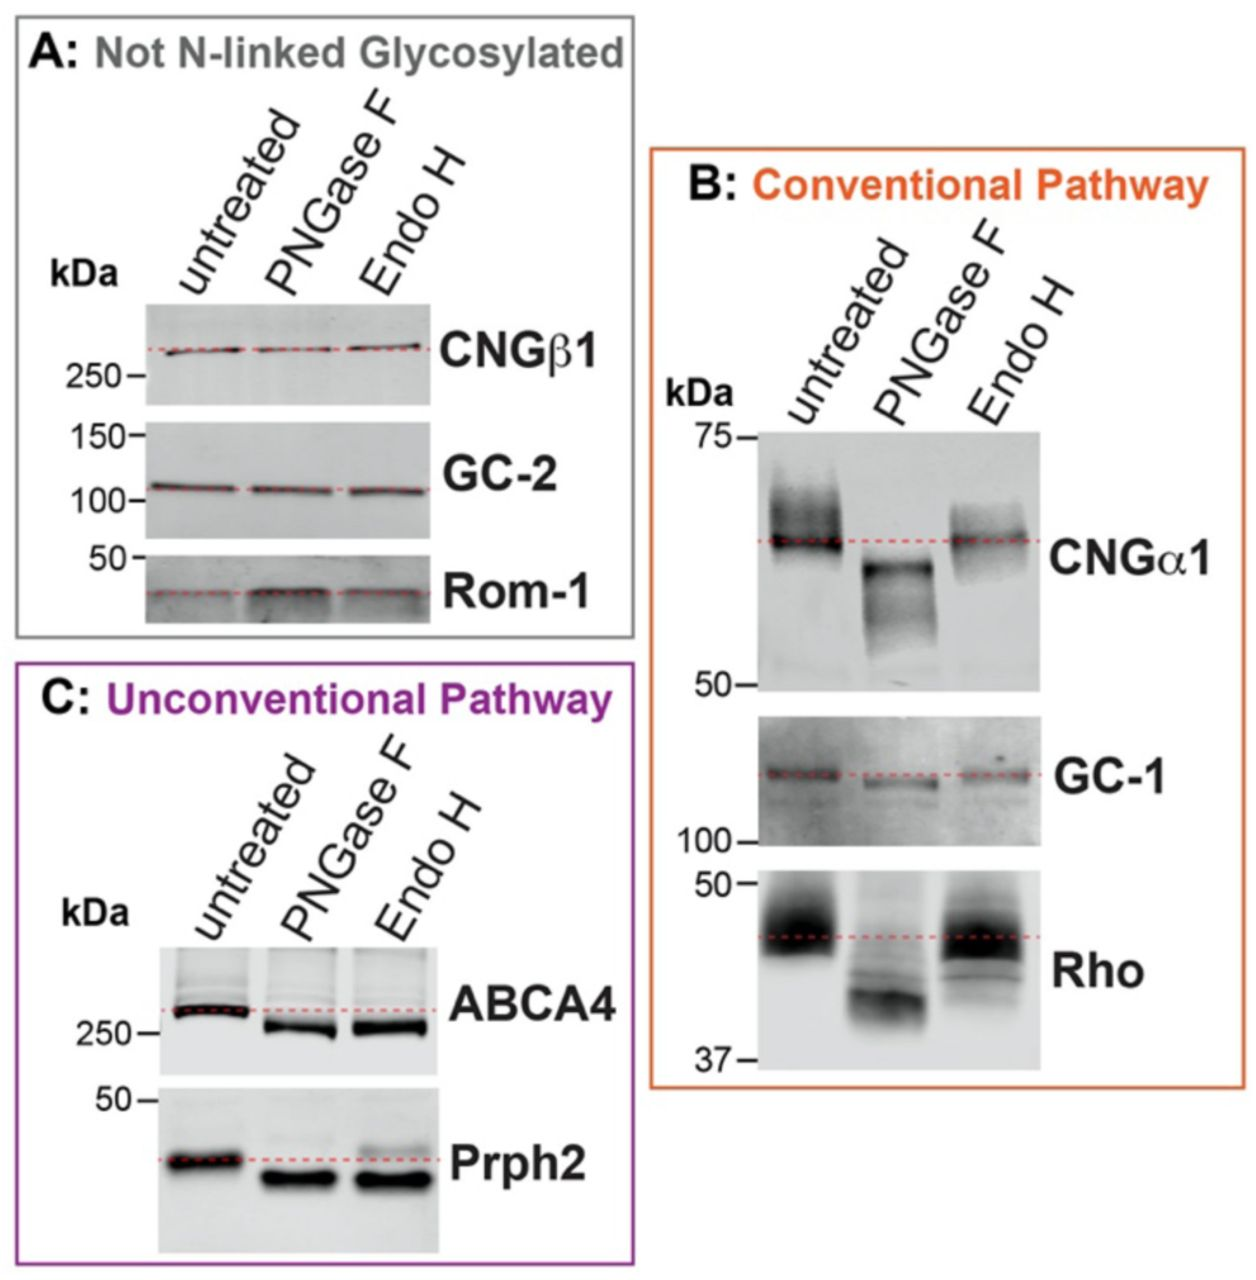 The rod CNG channel is trafficked using the conventional secretory pathway. Mouse retinal lysates (untreated) were incubated with PNGase F or Endo H and analyzed by Western blotting. ( A ) Electrophoretic mobility of non-glycosylated proteins CNGβ1, guanylate cyclase-2 (GC-2) and Rom-1, is unaffected by enzymatic treatments. ( B ) CNGα1, guanylate cyclase-1 (GC-1) and rhodopsin (Rho) are sensitive to PNGase F and resistant to Endo H treatment, indicating their processing through the conventional secretory pathway. ( C ) ABCA4 and peripherin-2 (Prph2) are sensitive to both PNGase F and Endo H treatments, indicating their processing through the unconventional secretory pathway. Dashed red lines are used to mark the positions of untreated protein bands. 10 µg of total protein was loaded in each lane.